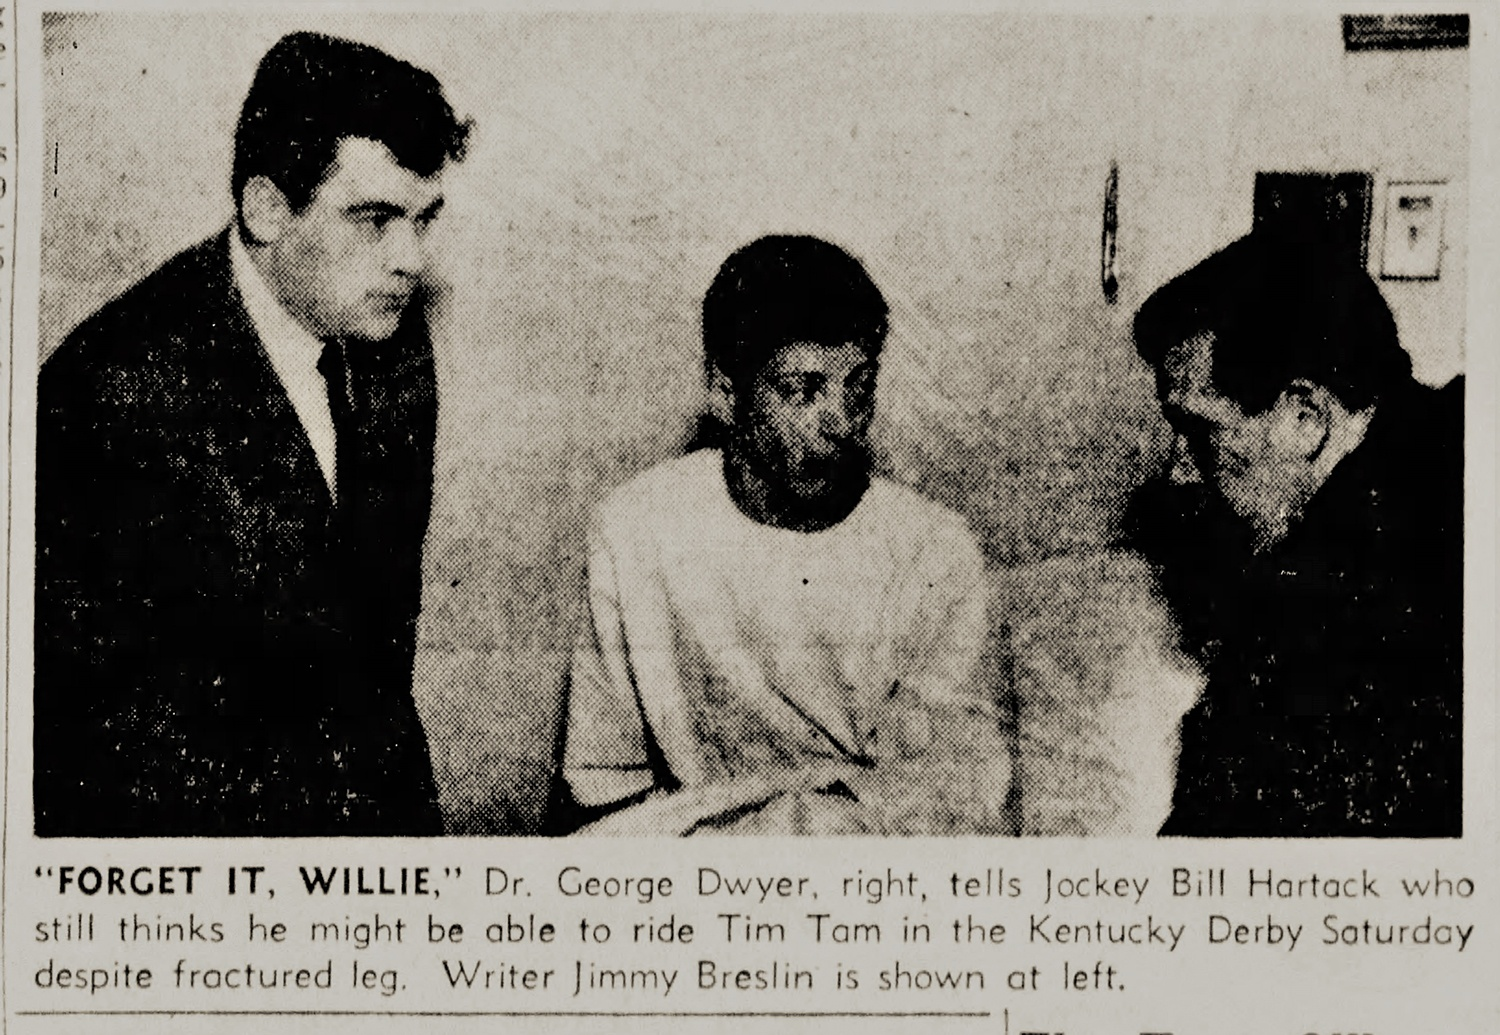 """""""Forget it Willie."""" Medical experts all agreed that Hartack would not be able to ride in the Kentucky Derby a week later after breaking his leg in April 1958. From The Pittsburgh Press, Monday, April 28, 1958."""